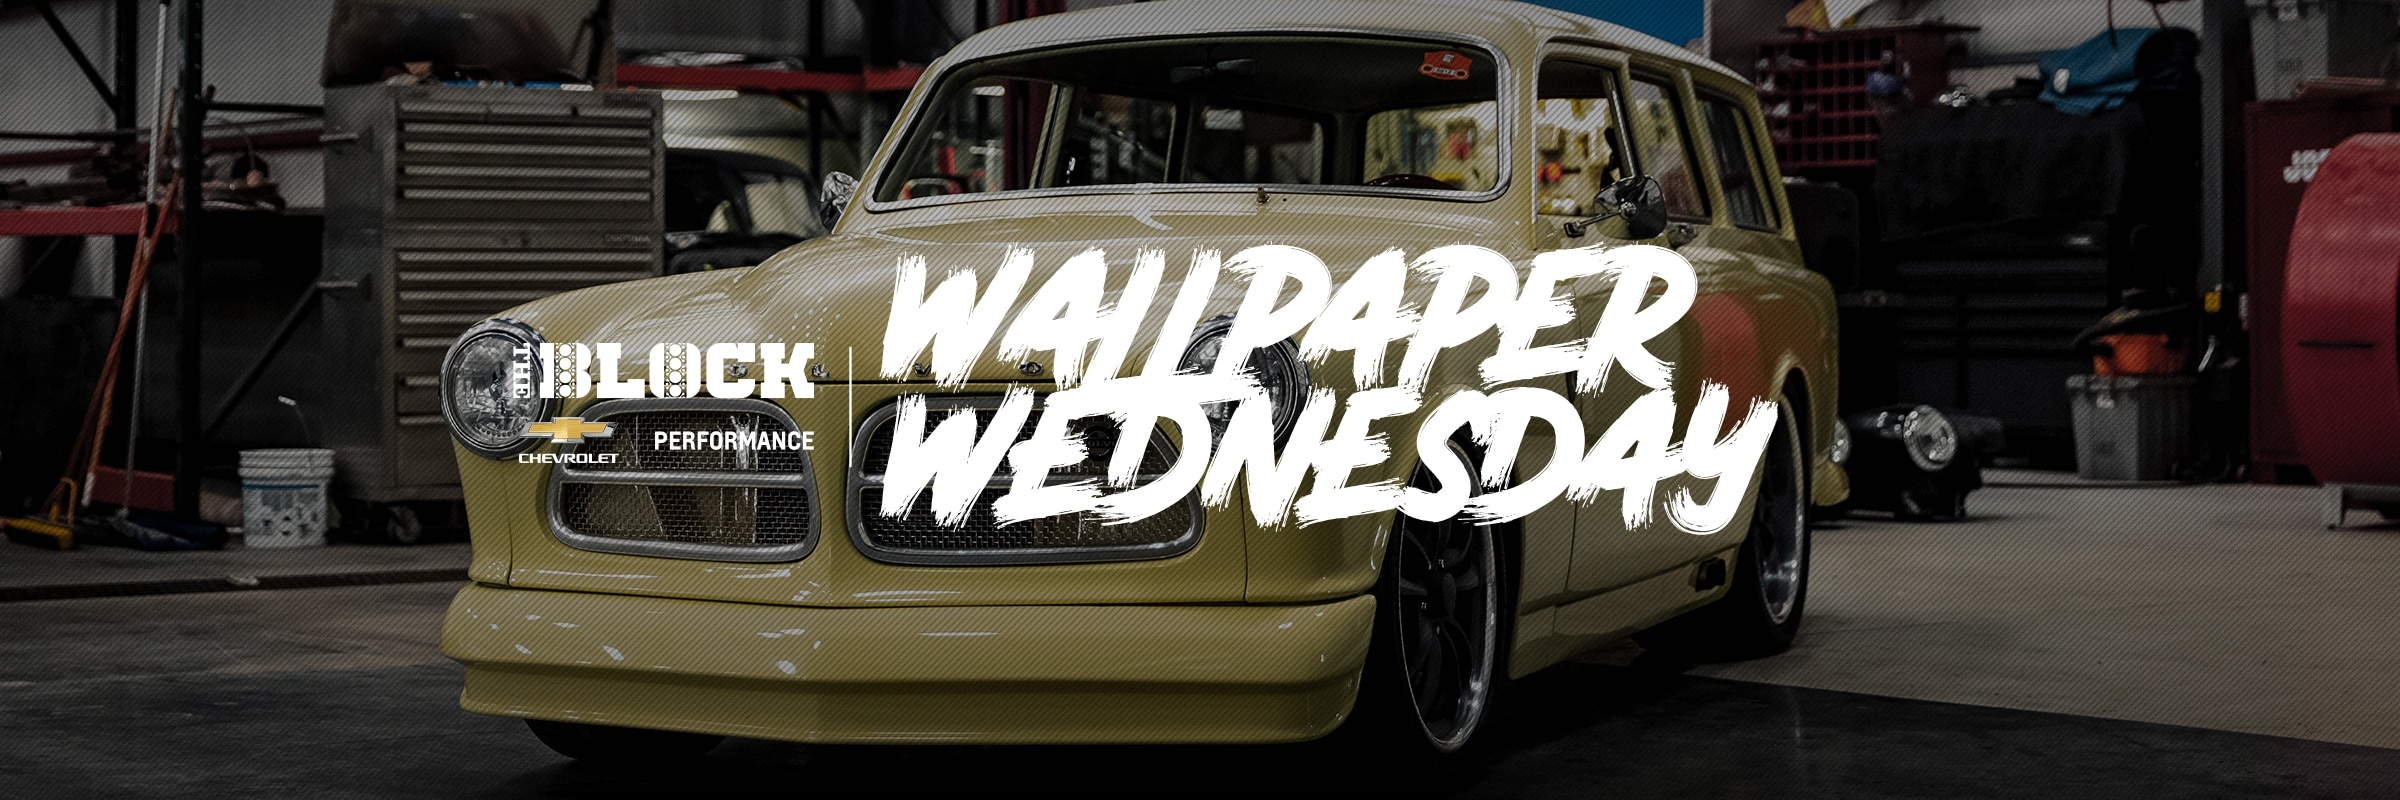 Vehicles, Parts, Events, Chevrolet, Chevrolet Performance, Chevy, Power Tour, HOT ROD Power Tour, Power Tour 2019, HOT ROD Power Tour 2019, LS, LS Swap, LS1, Volvo, Volvo Amazon, 1965 Volvo Amazon,  Wallpapers, Downloads, Wallpaper Wednesday